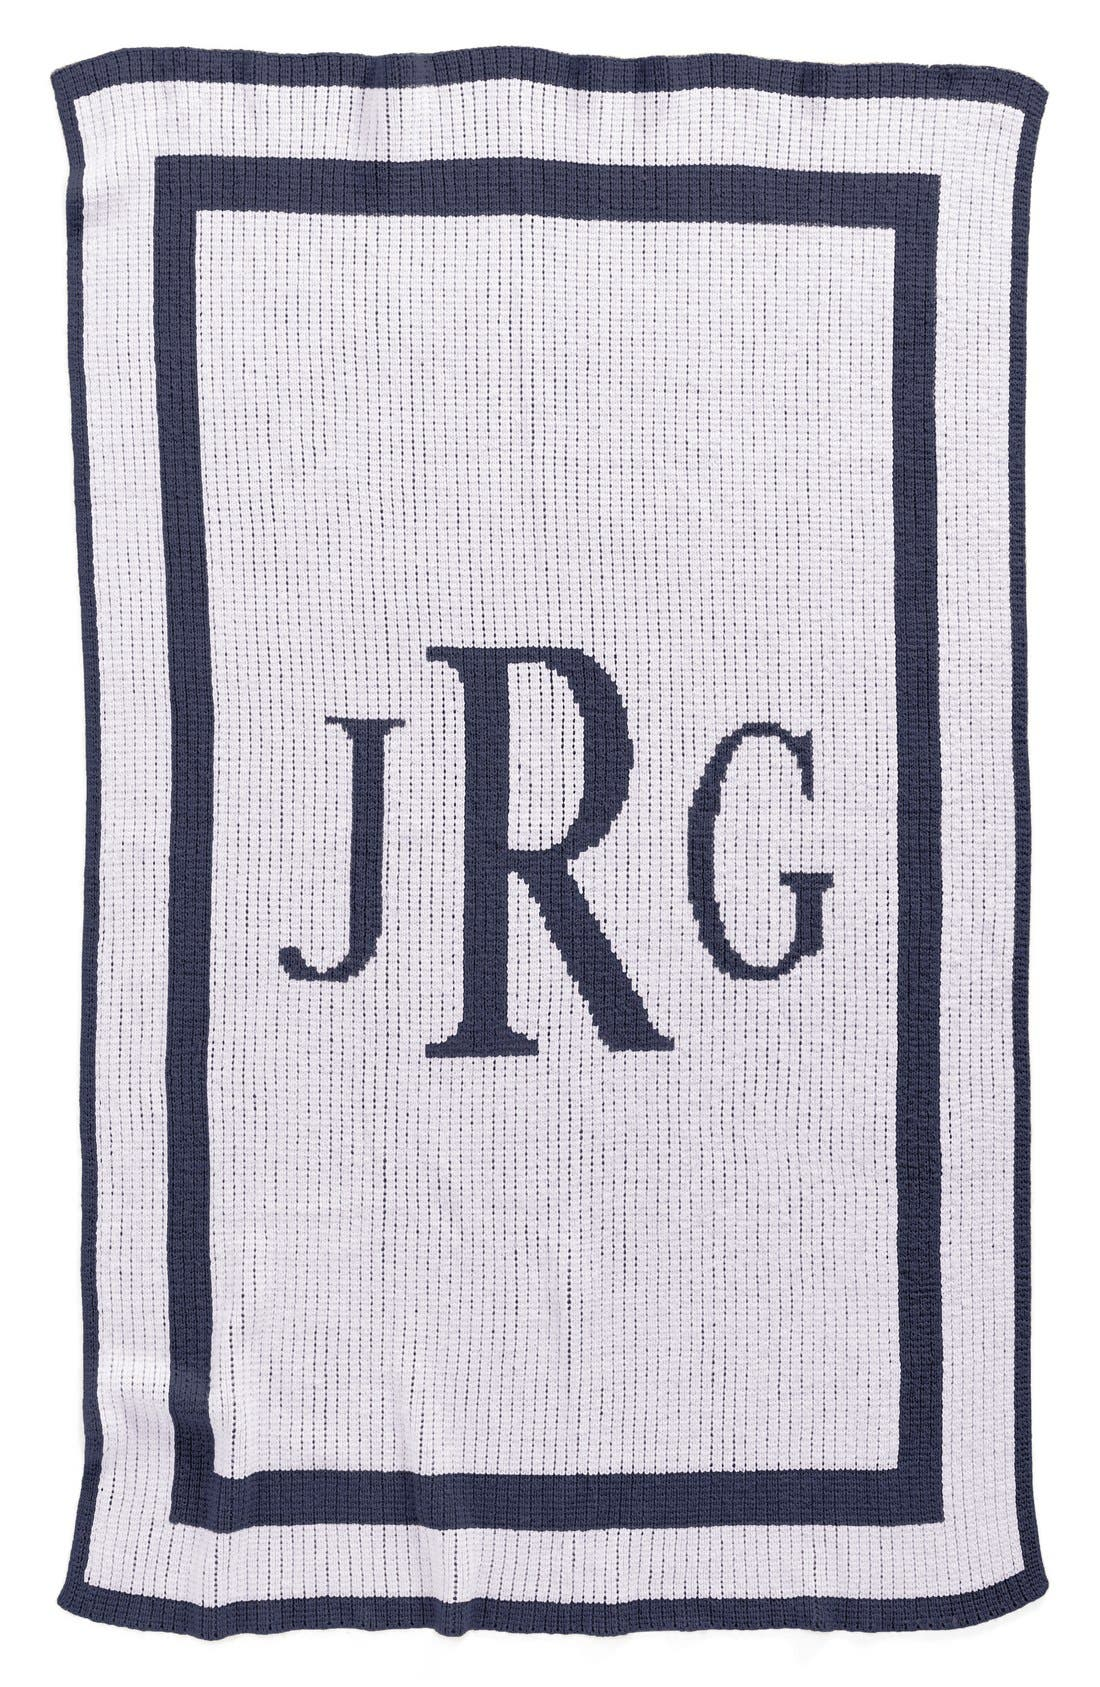 'Classic Monogram' Personalized Crib Blanket,                             Main thumbnail 1, color,                             Navy/ White